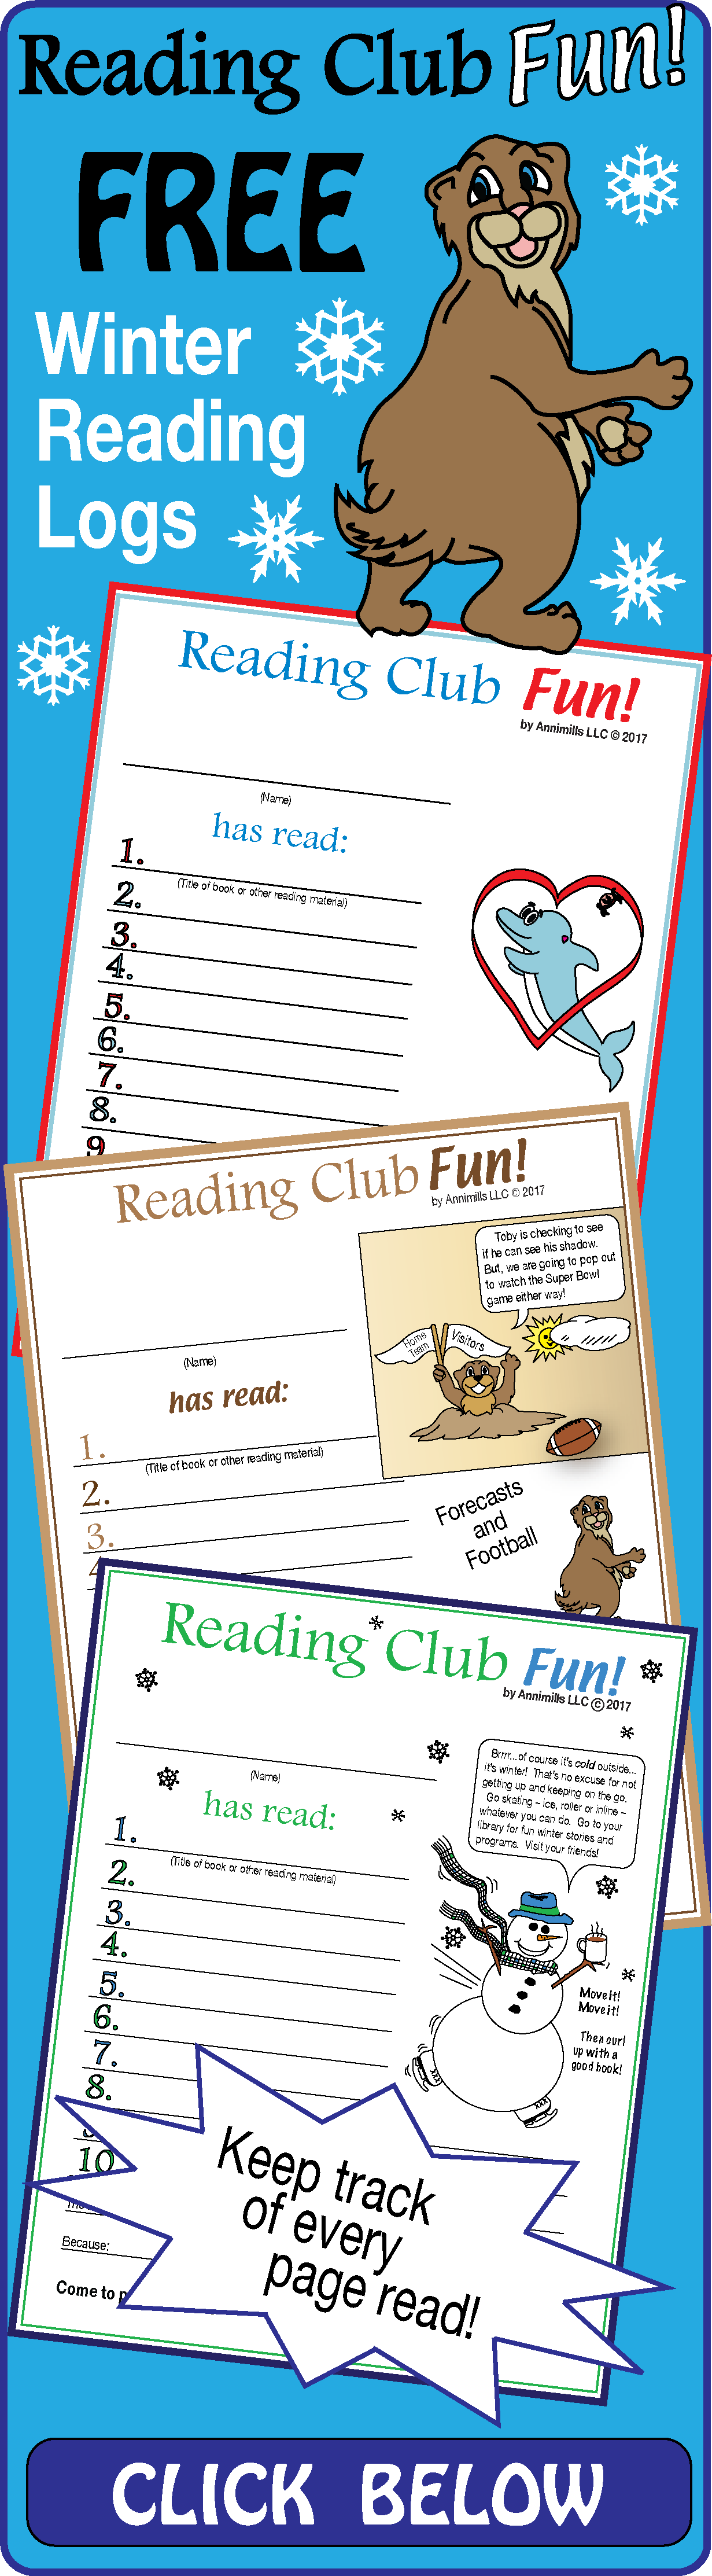 Free Reading Logs And Certificate Sets To Encourage Kids